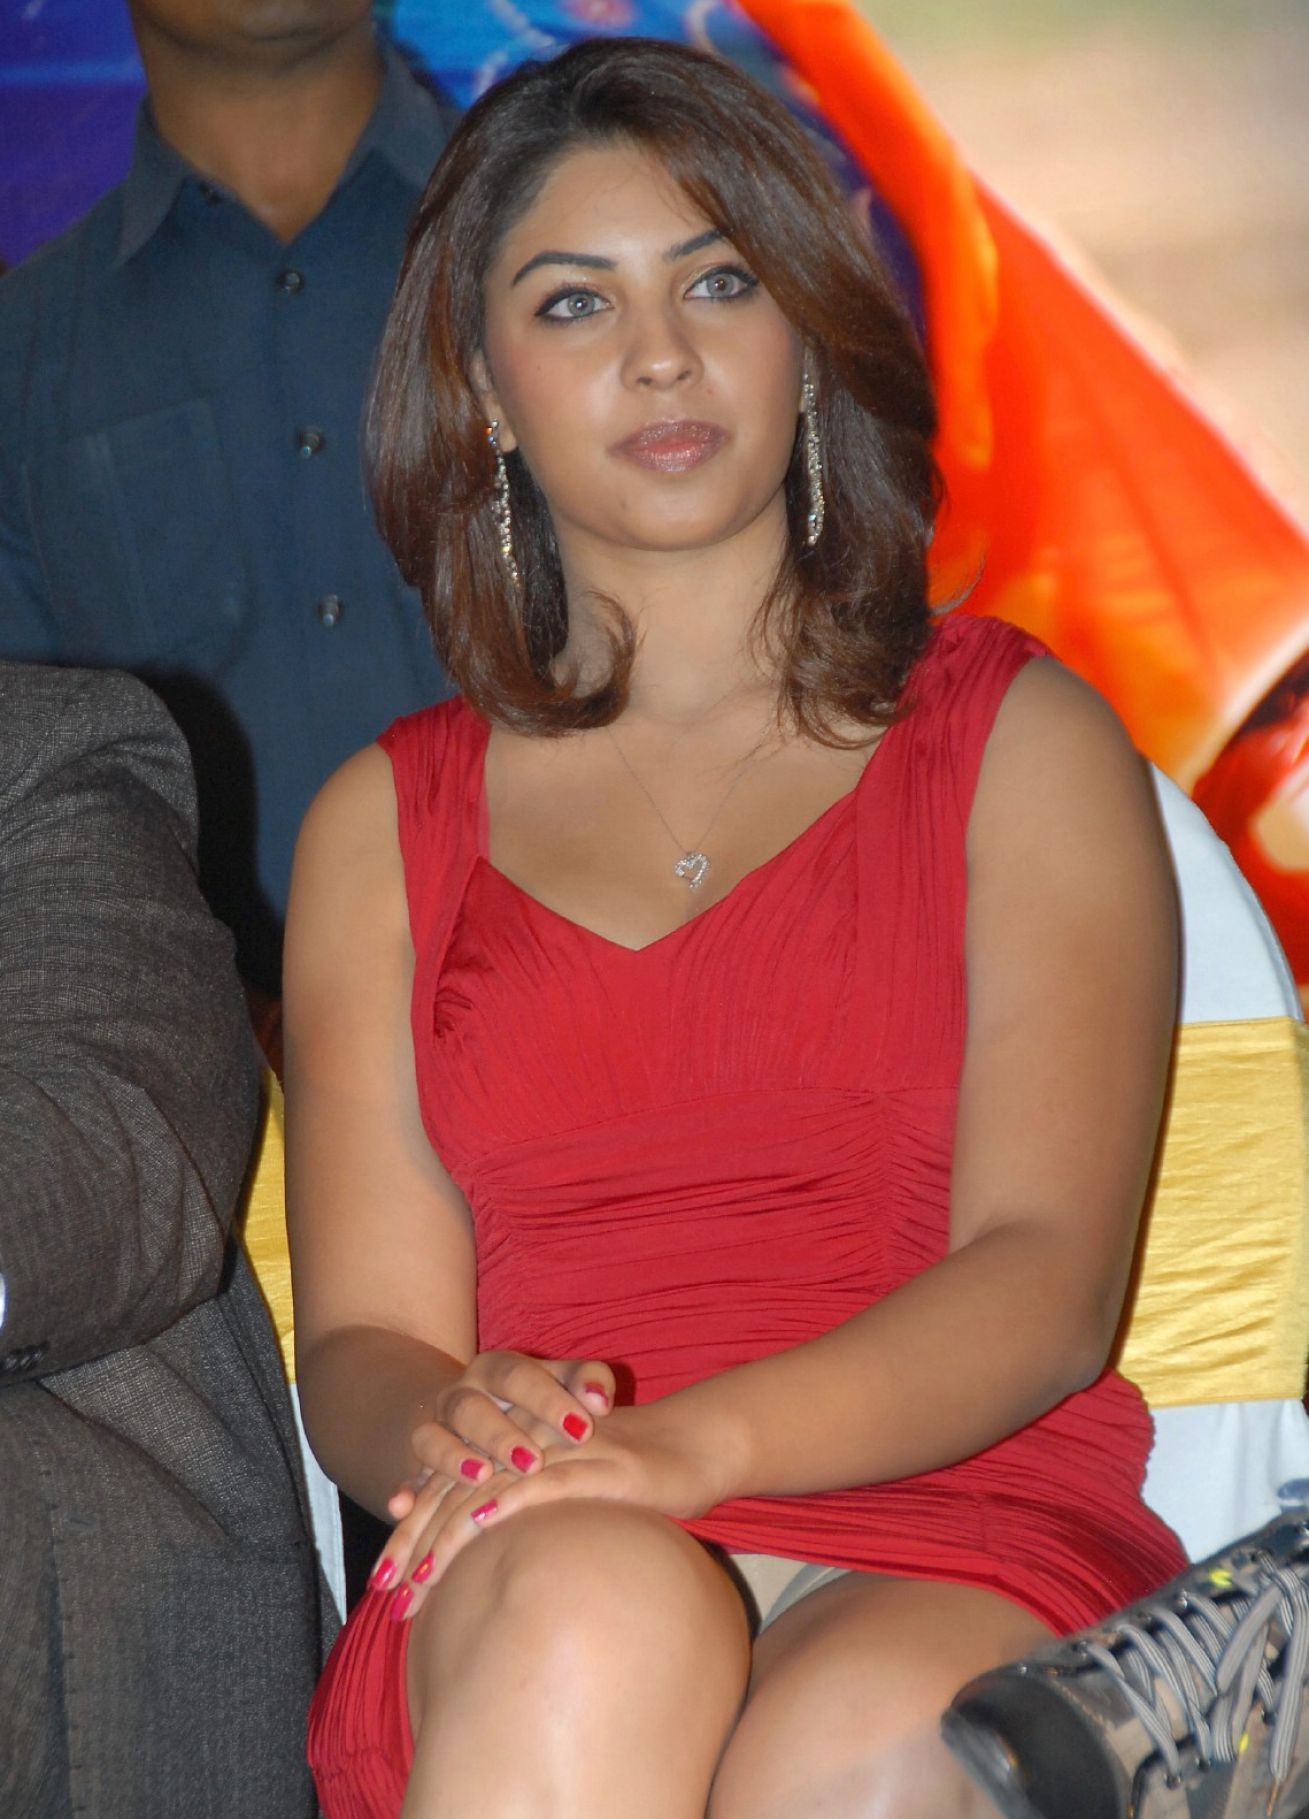 richa gangopadhyay in mirapakaya photos 1